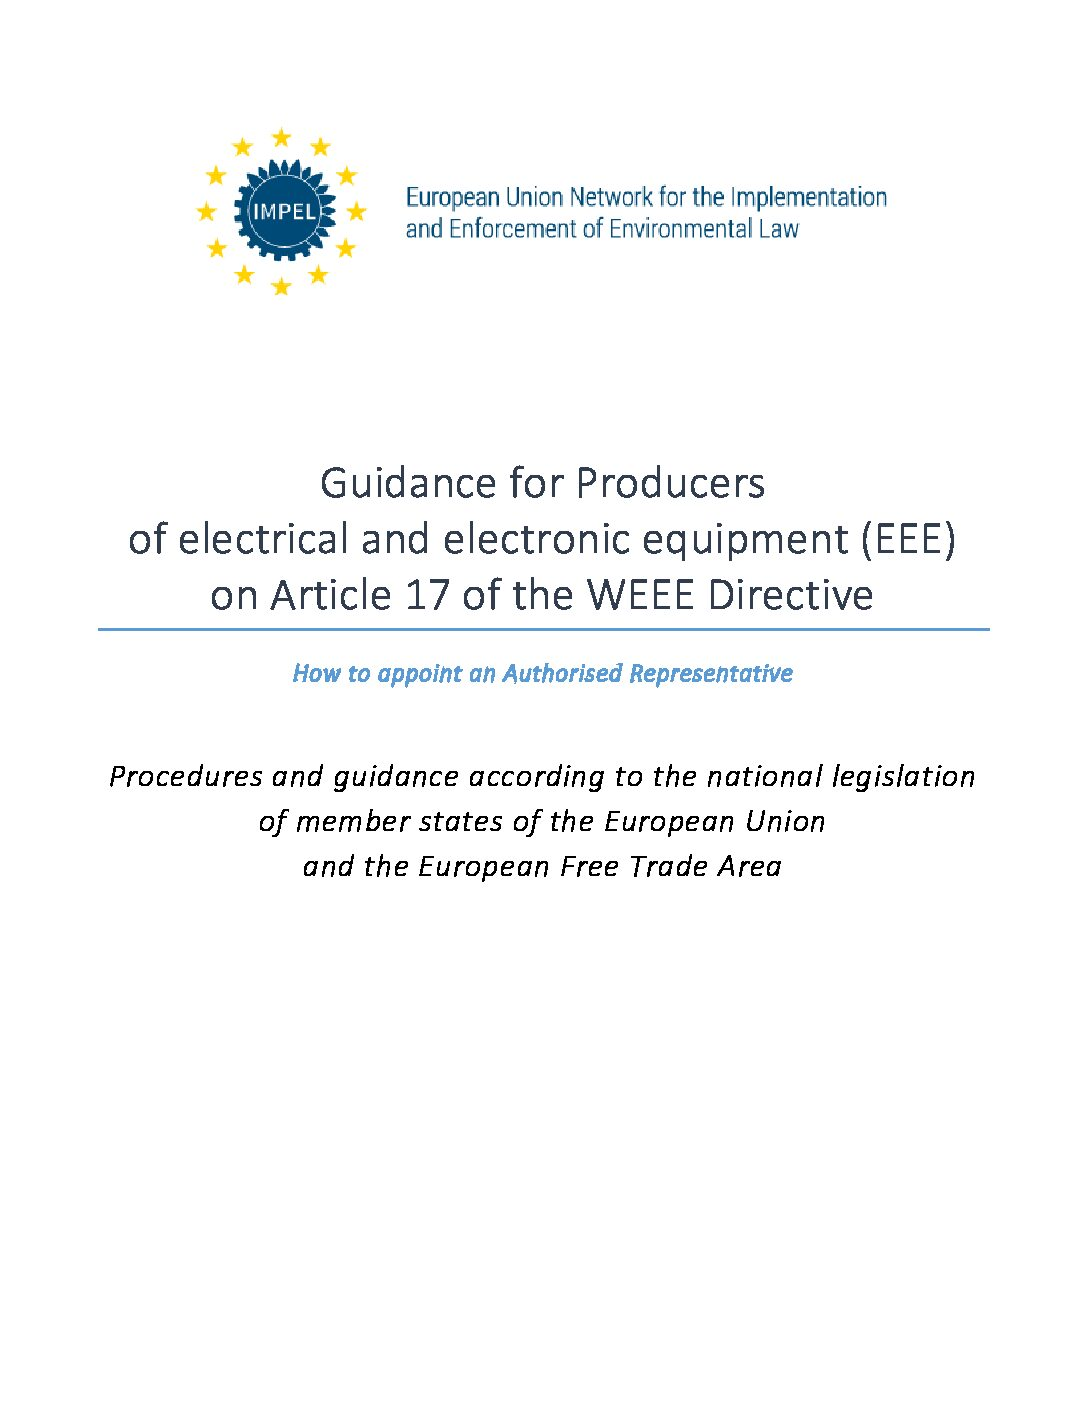 IMPEL: GUIDANCE FOR PRODUCERS EEE: How to appoint an Authorised Representative